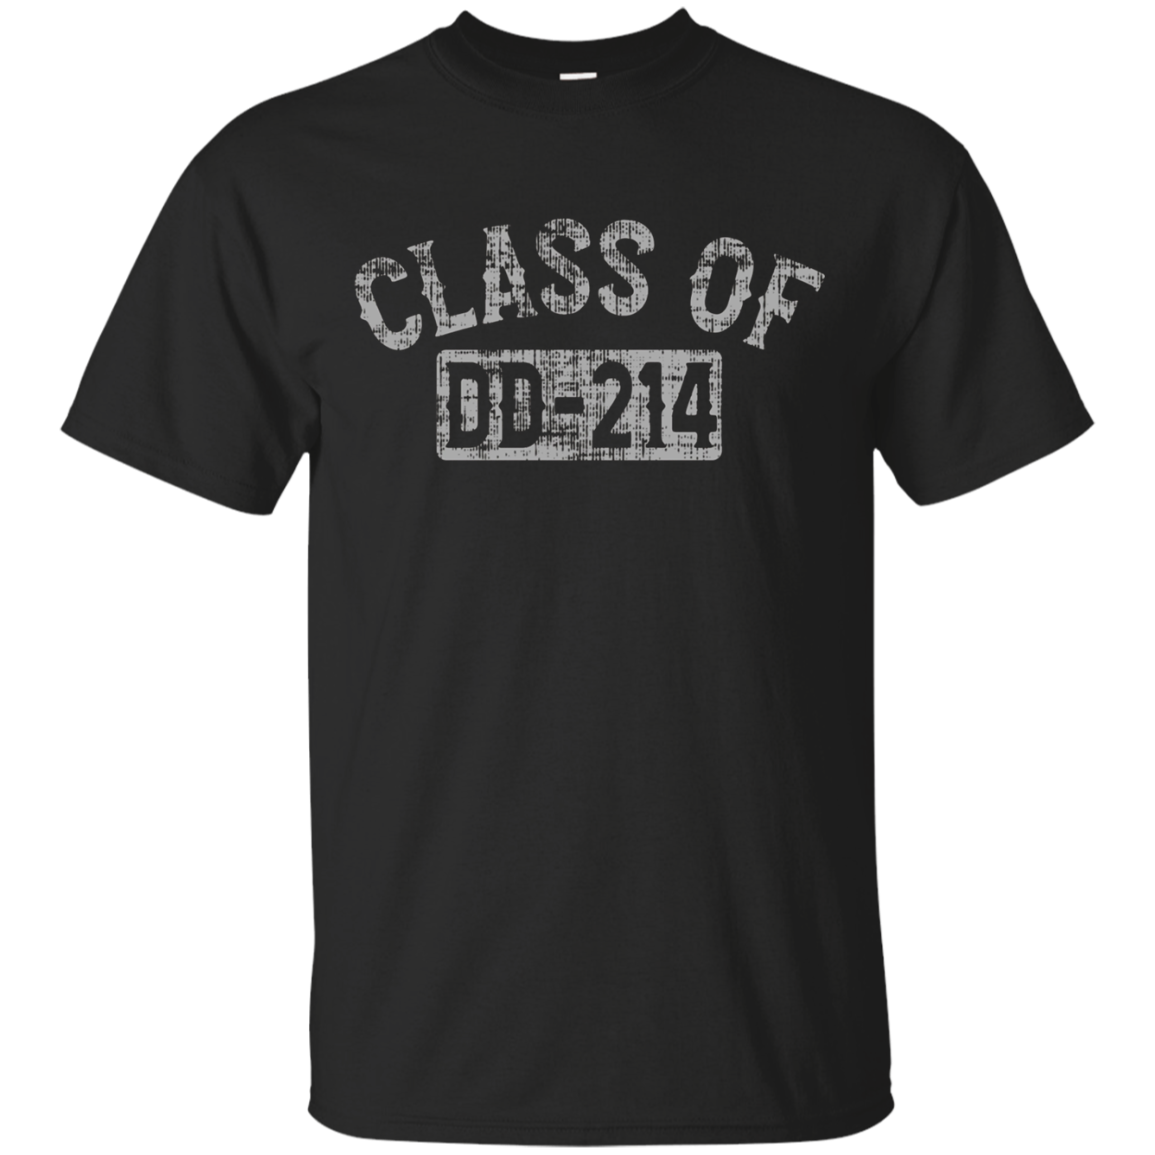 Cool DD-214 Military Veteran Shirt - DD-214 Tee